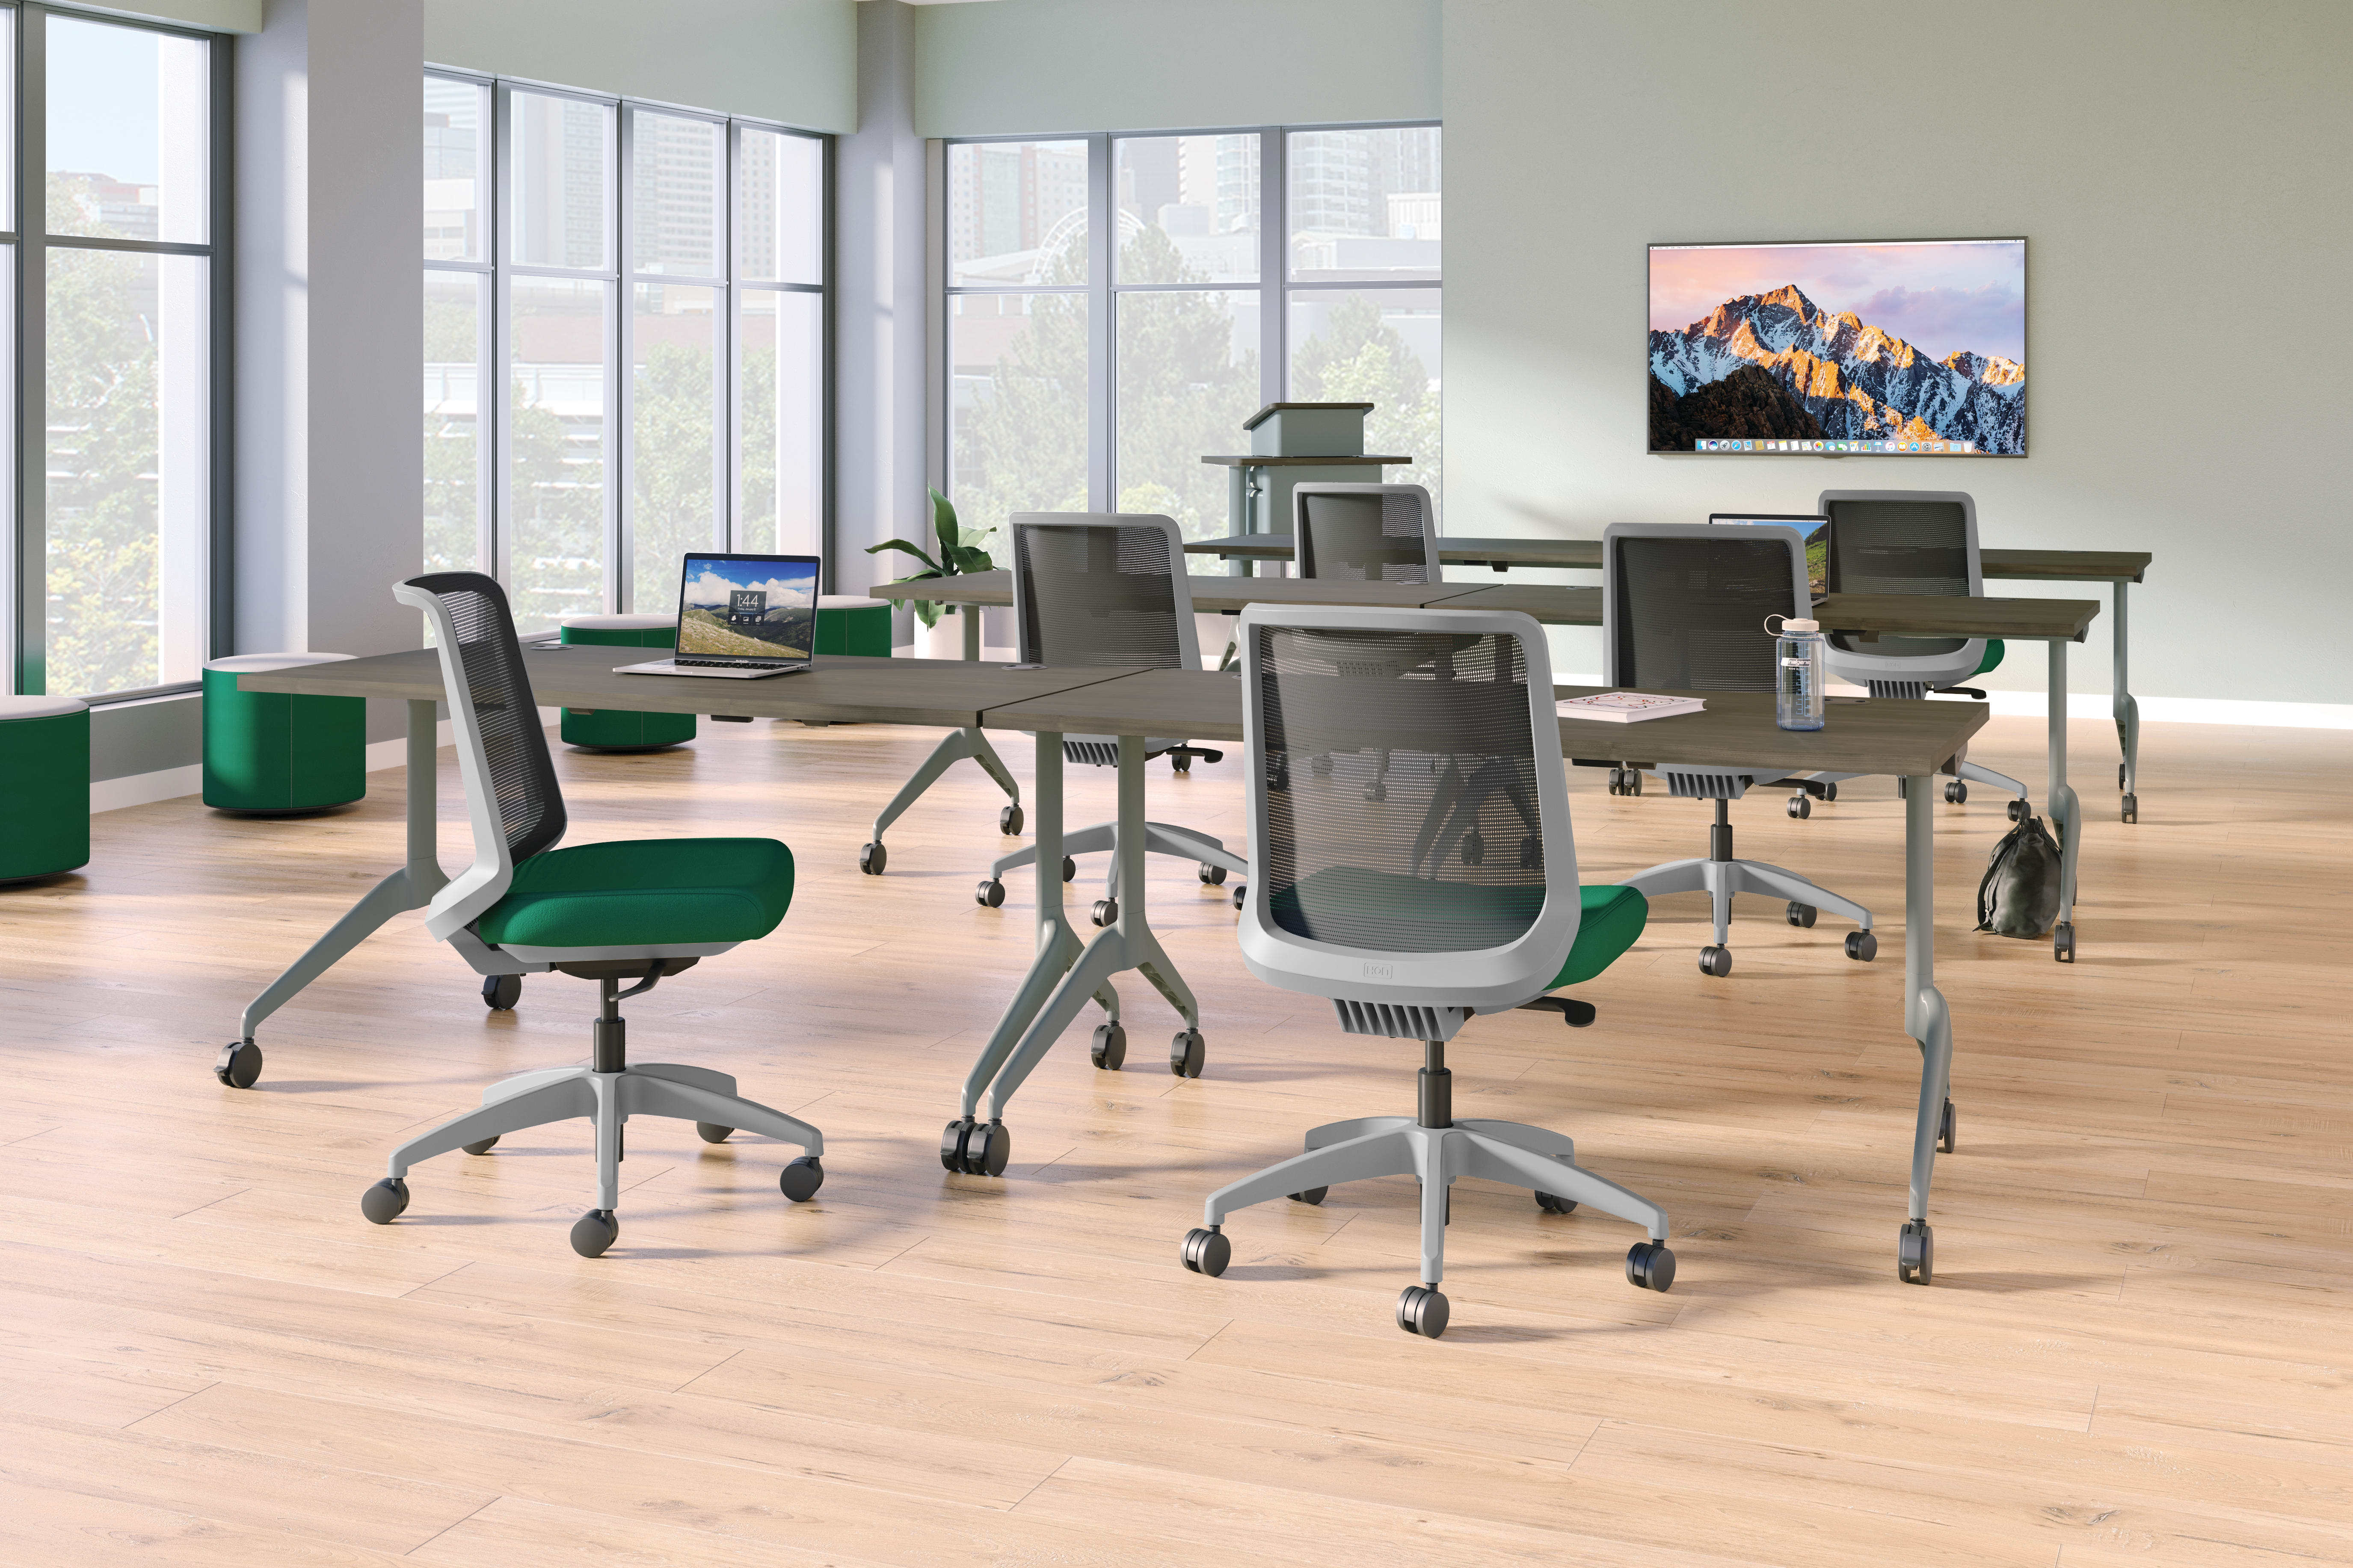 Cliq chairs with Motivate training tables.